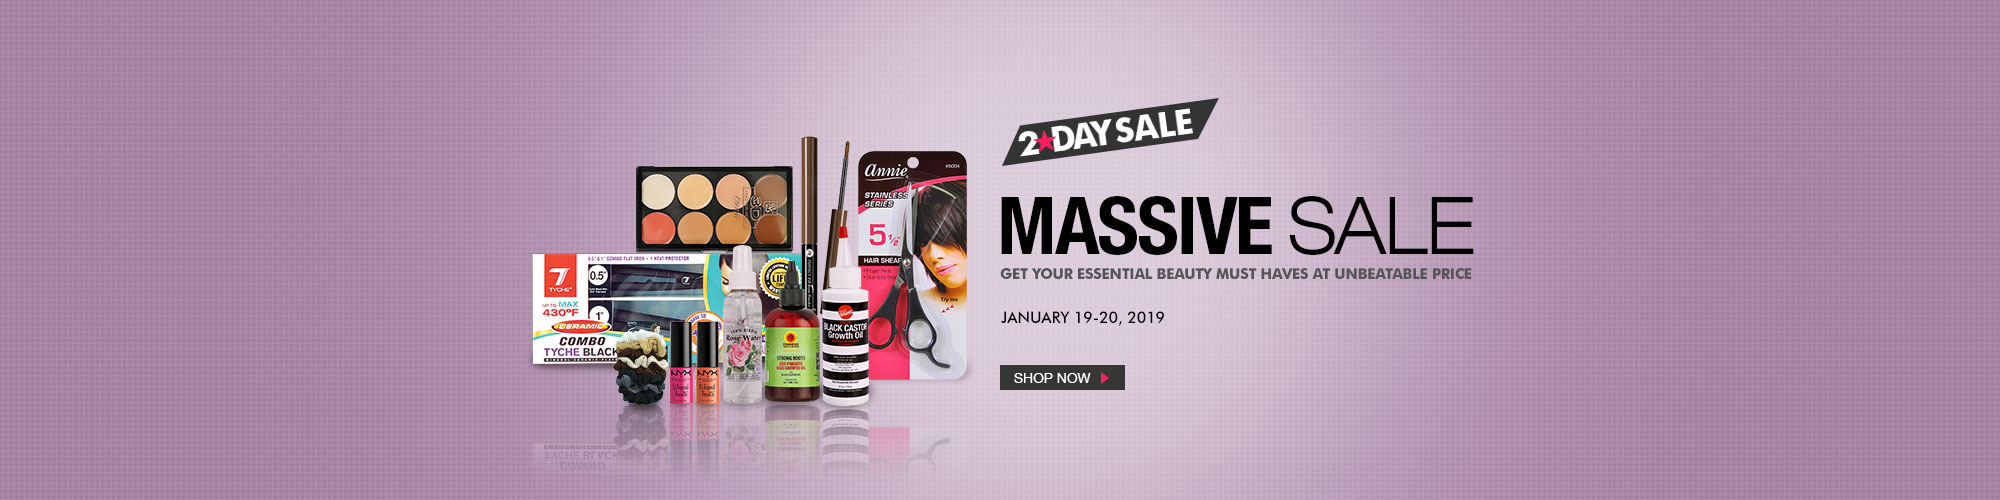 2-DAY MASSIVE SALE - BEAUTY ESSENTIALS